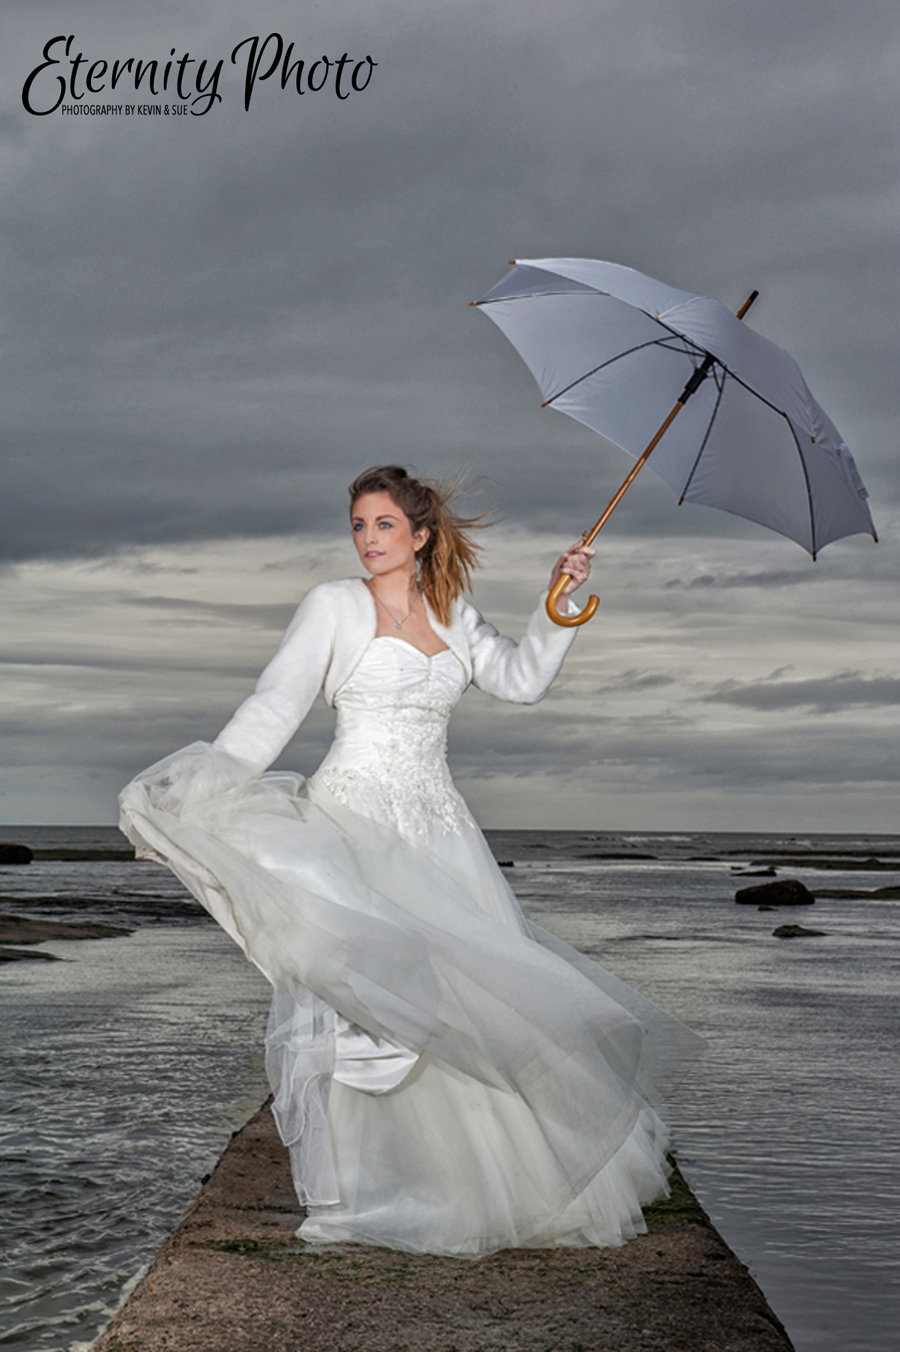 West Yorkshire wedding photography by Eternity Photo Ltd.  Bridal shoot.at Whitby, North Yorkshire.